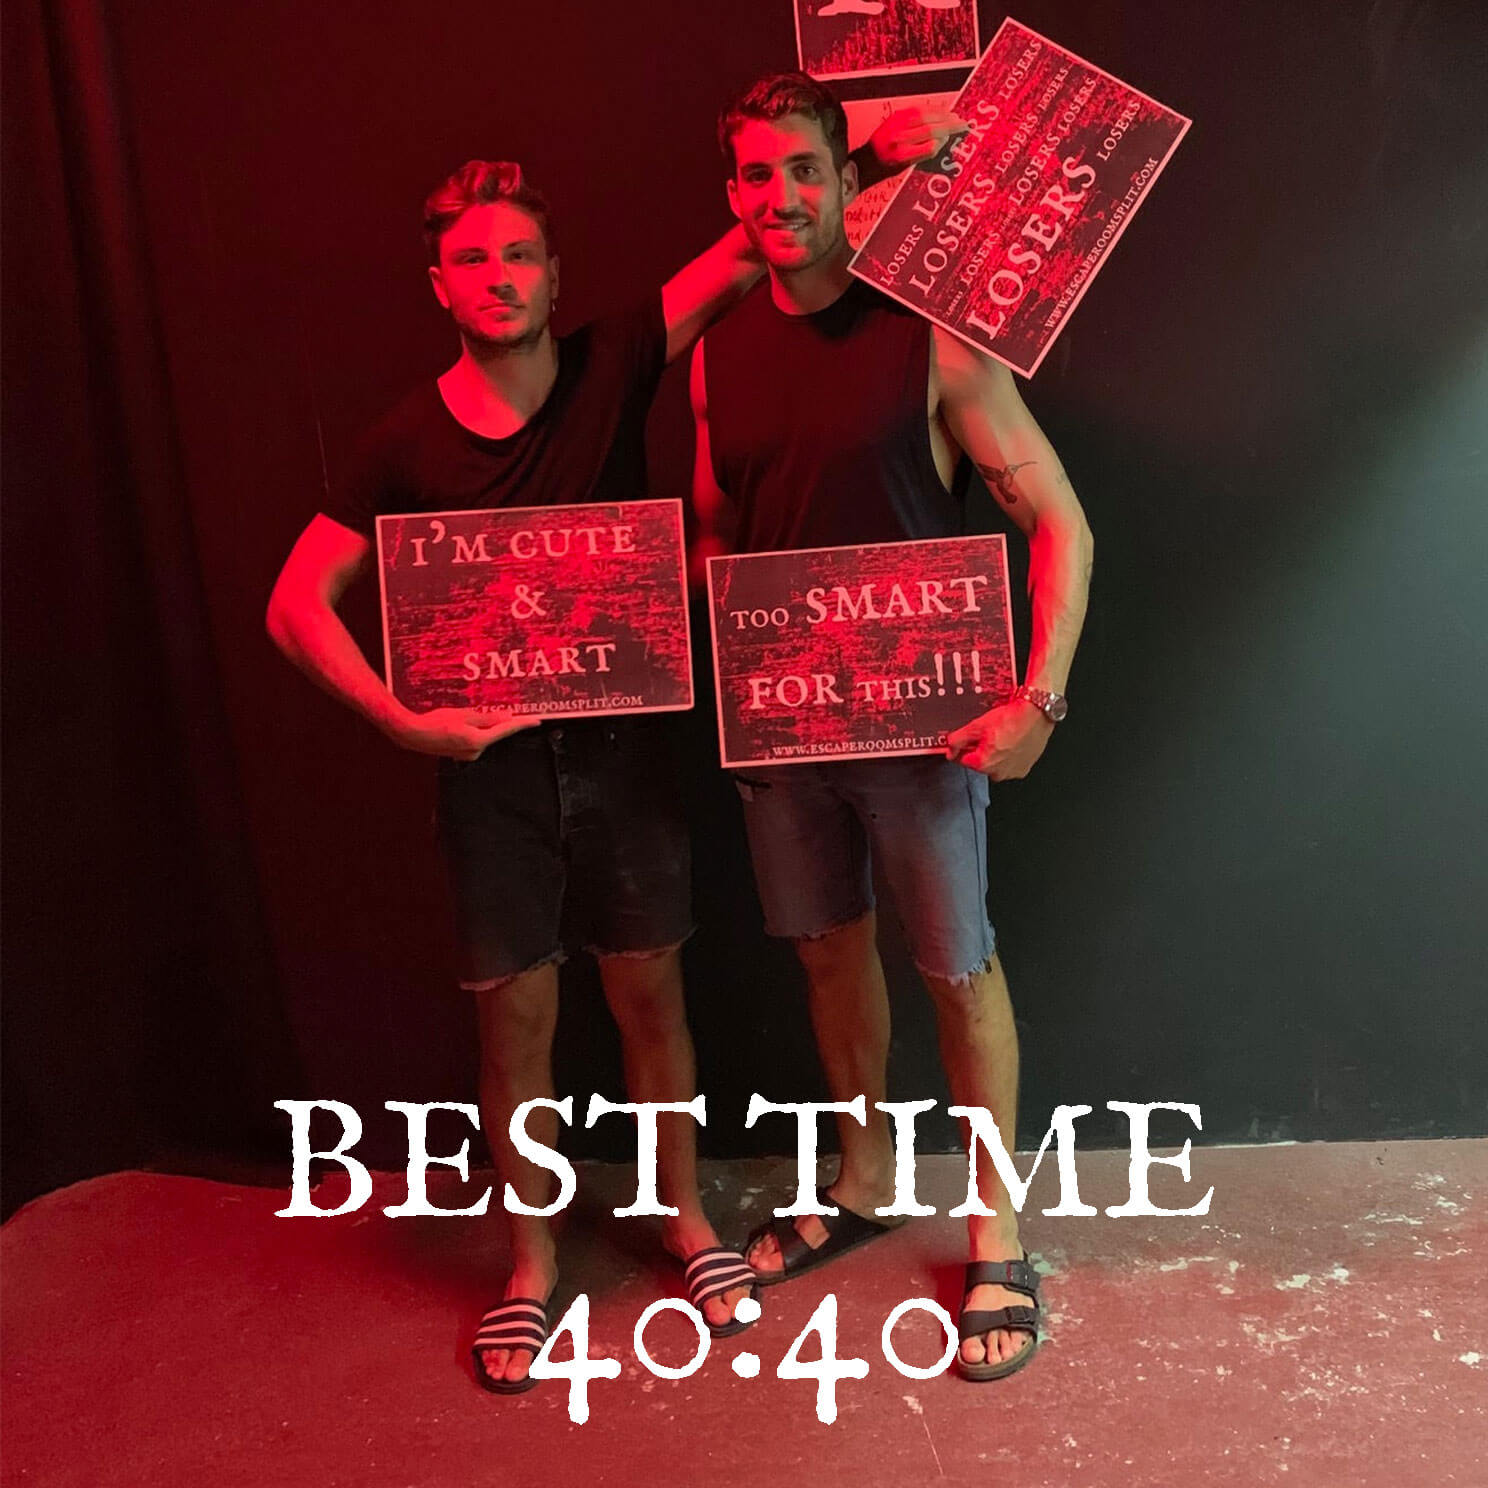 ESCAPE ROOM SPLIT BEST TIME